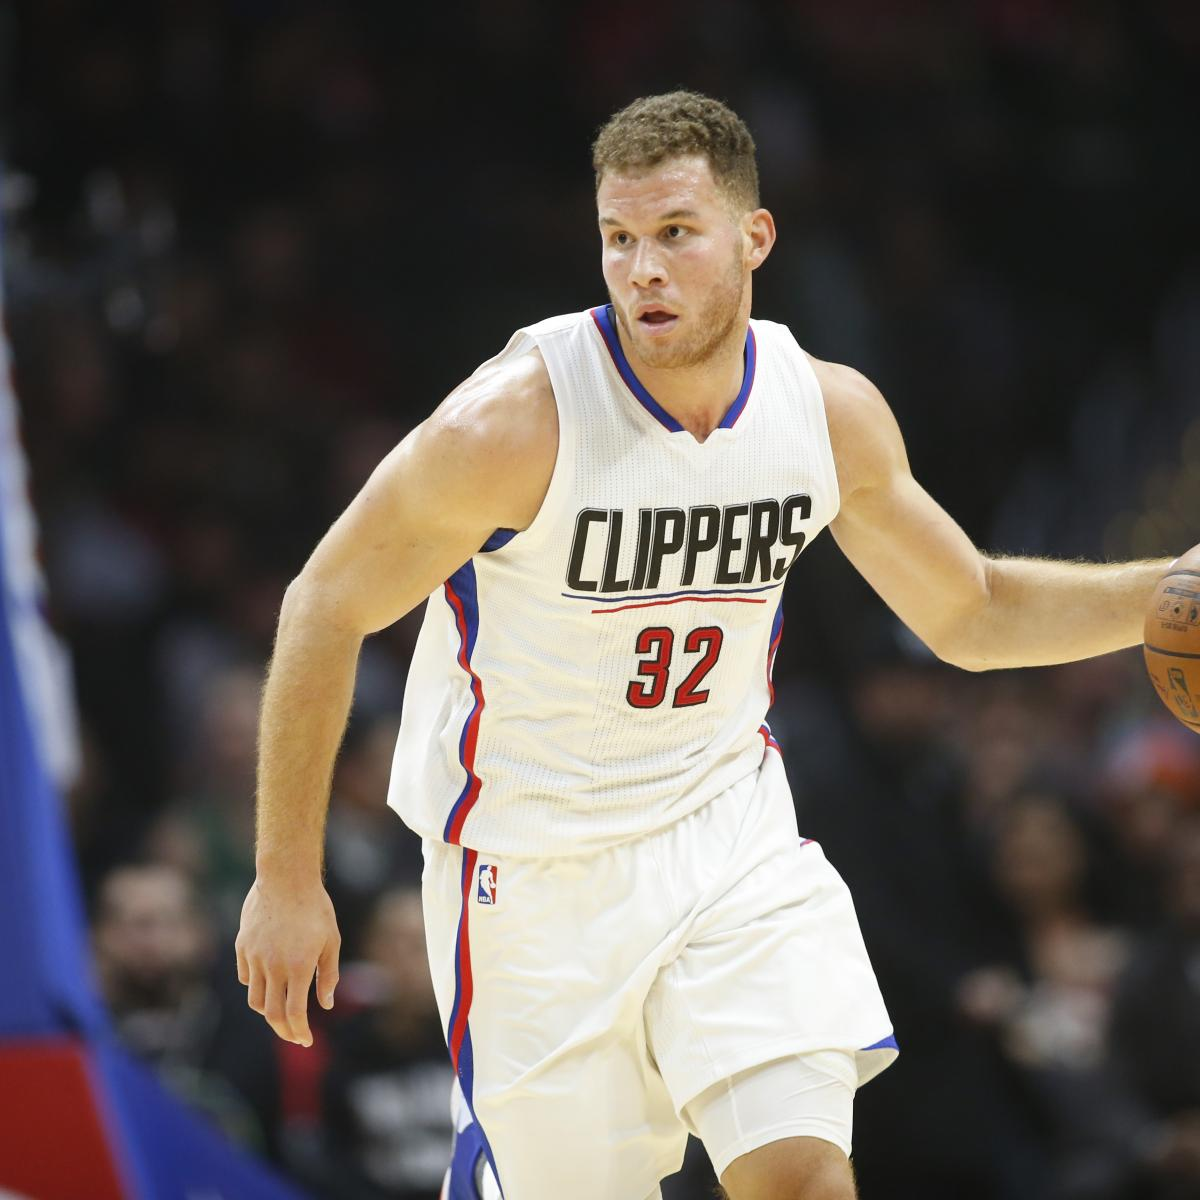 La clippers the impact of blake griffins surgery on the team foxsports com - Blake Griffin Trade Rumors Latest News Speculation On Clippers Star Bleacher Report